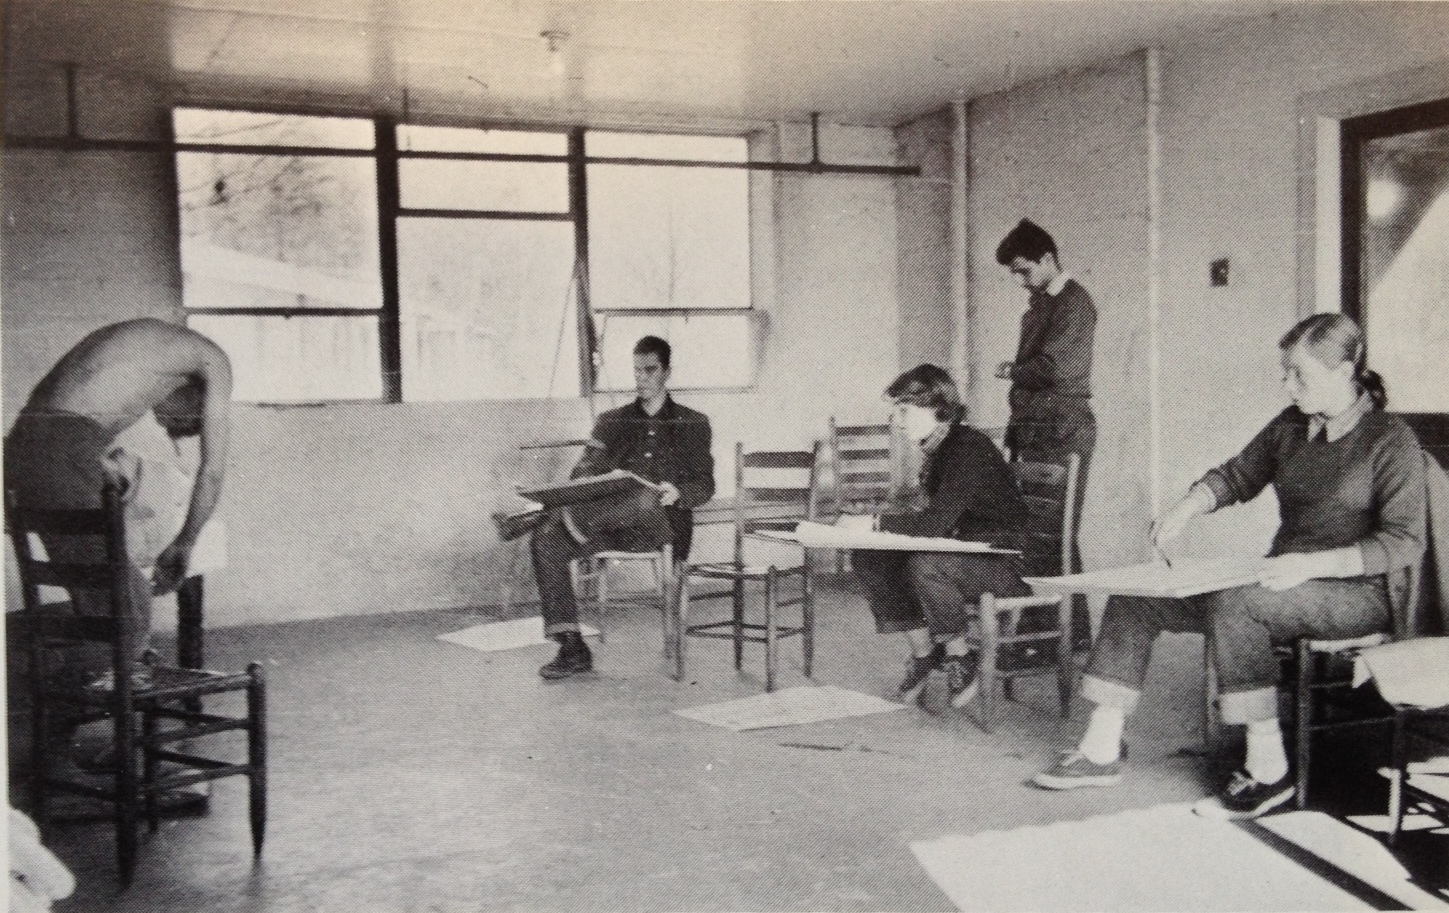 BMC - fiore's drawing class by paul leser